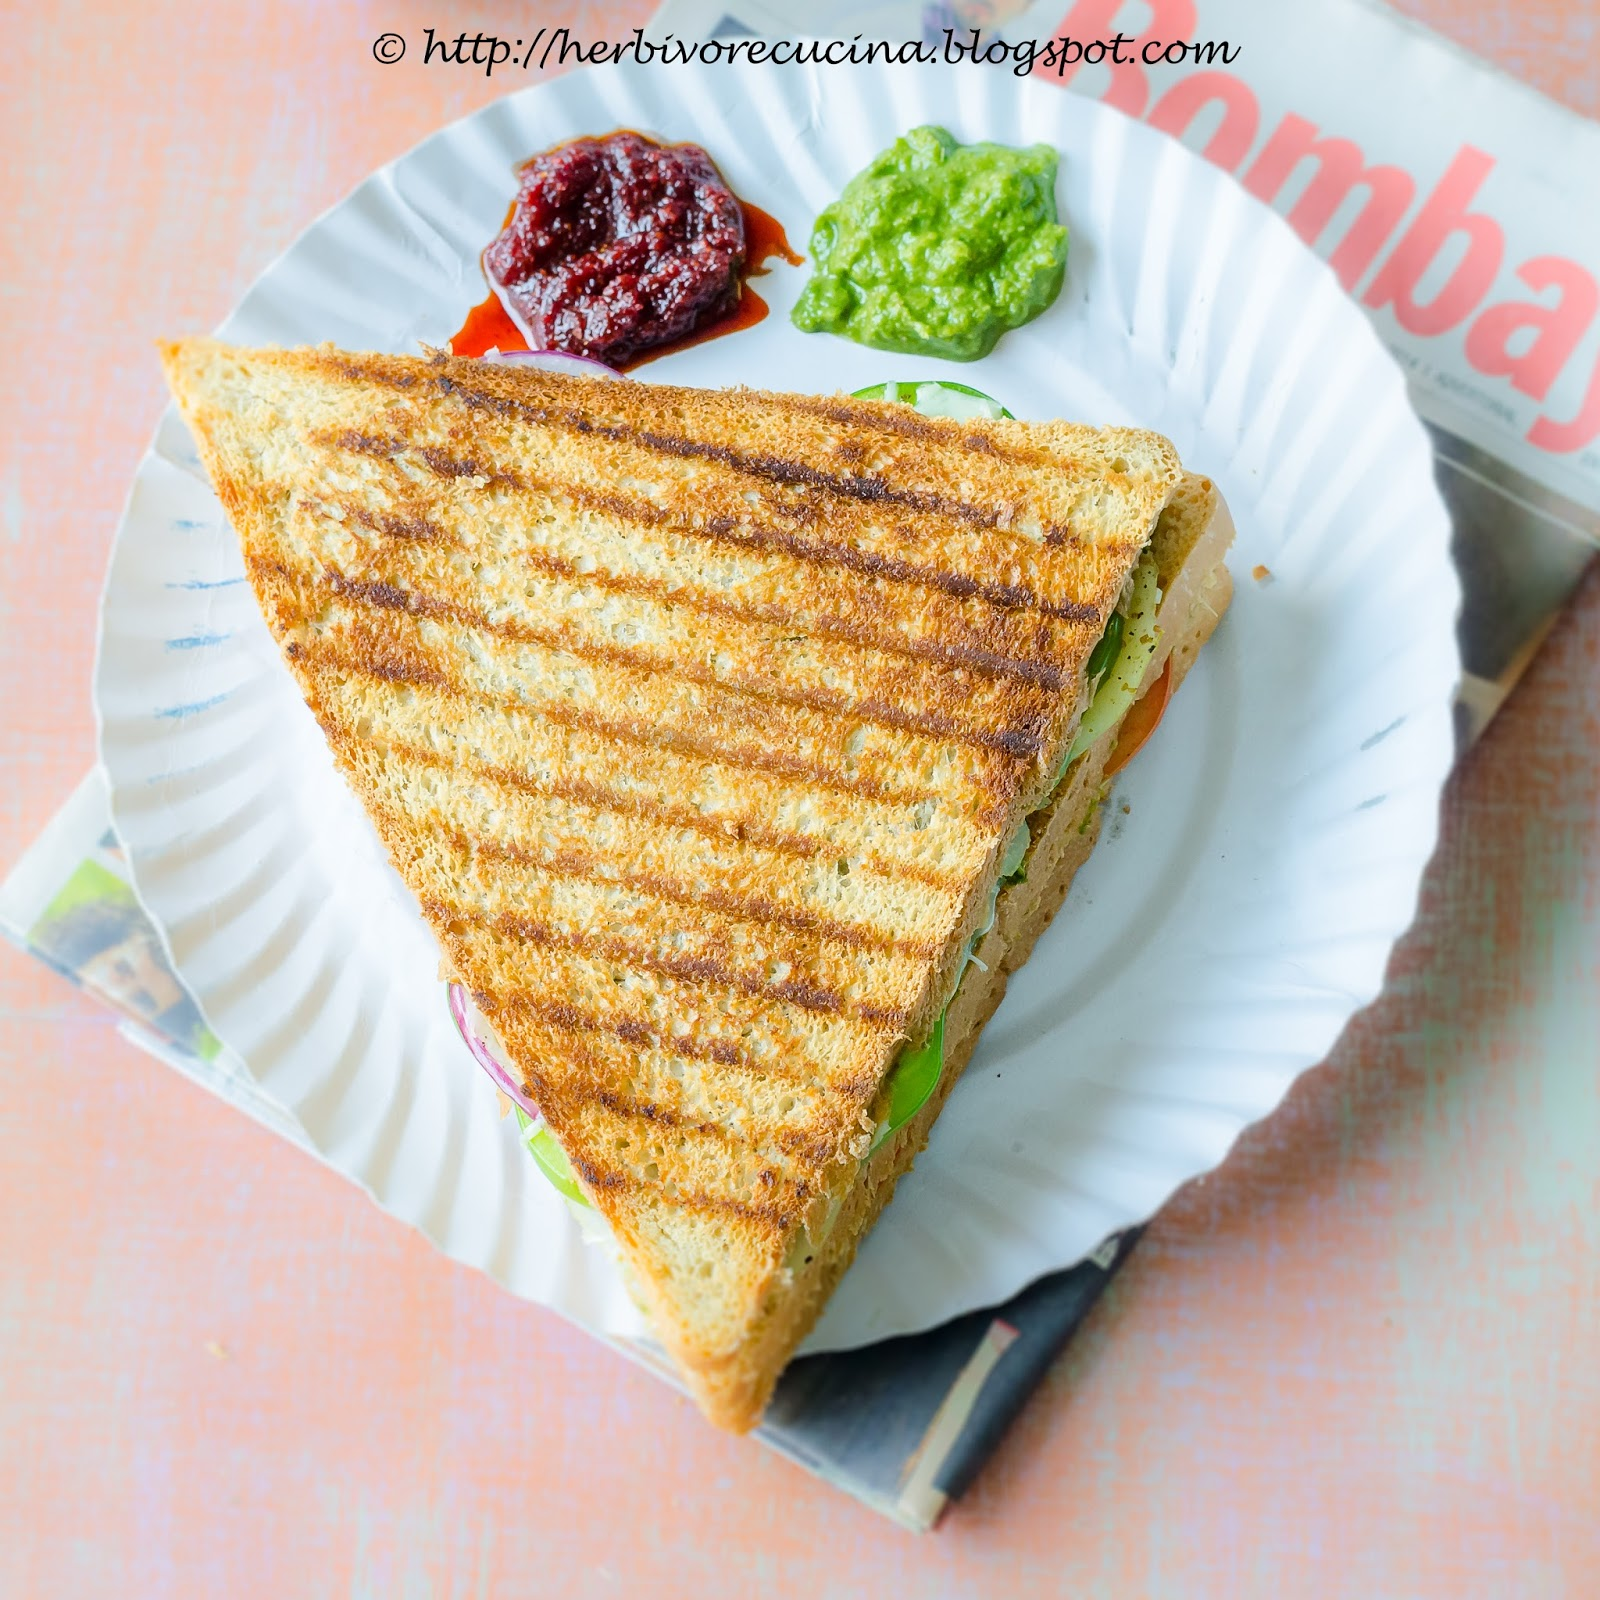 Herbivore Cucina Vegetable And Cheese Grilled Sandwich